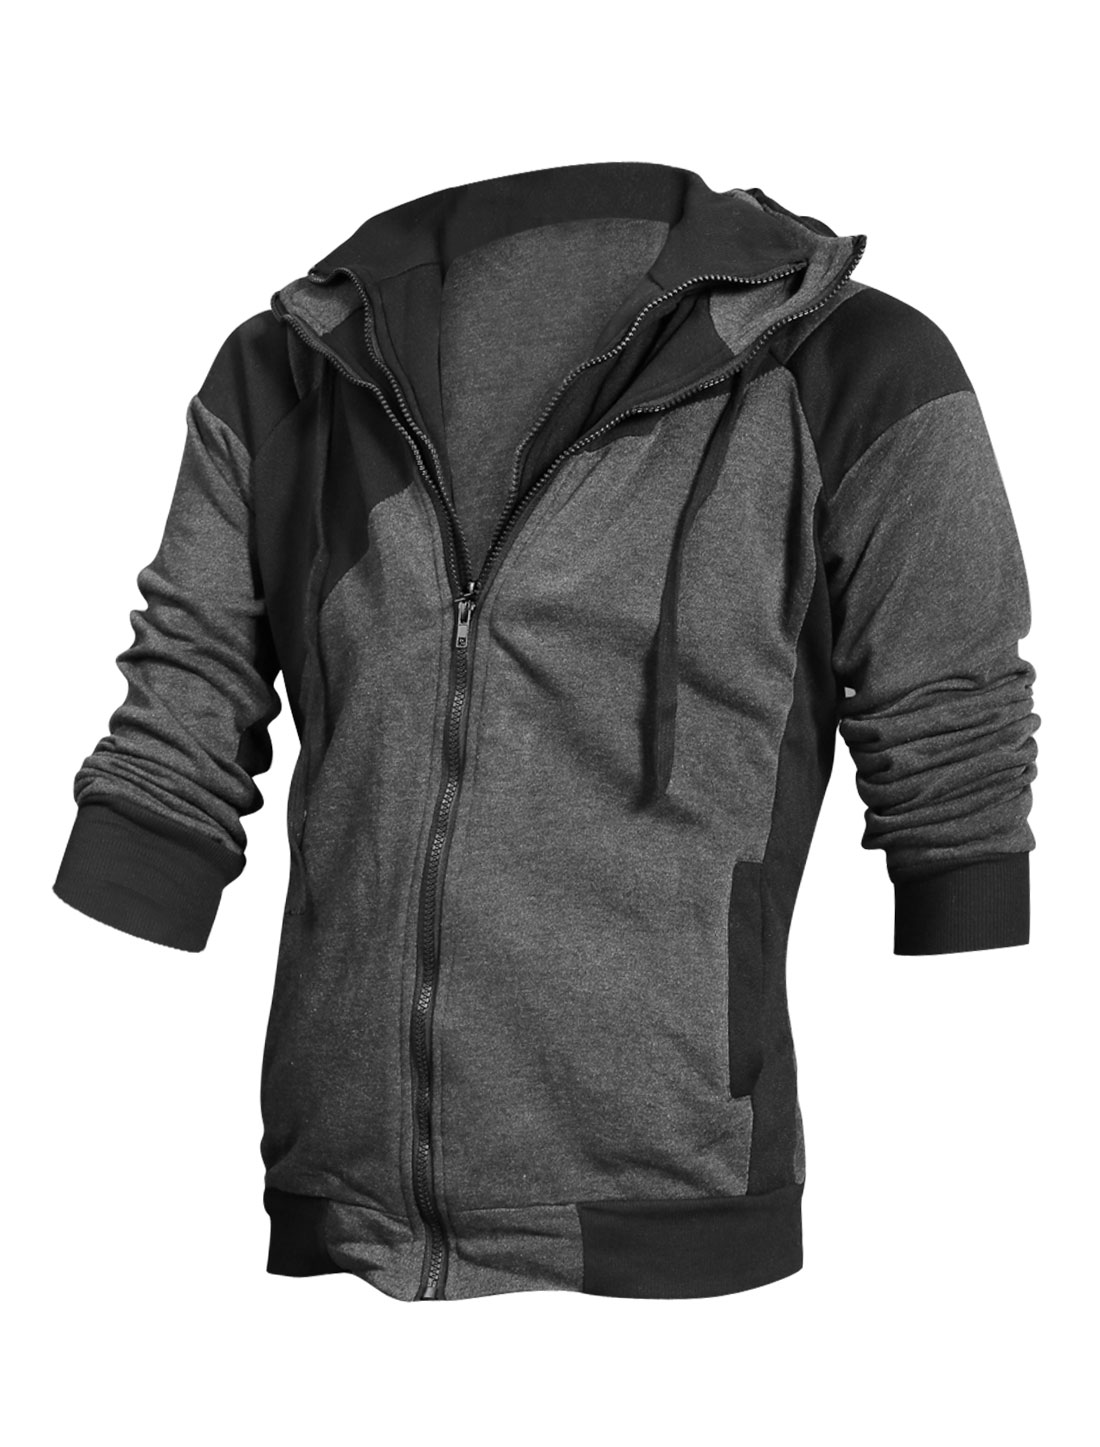 Man Dark Gray Double Zipper Front Pockets Drawstring Detail Hoodie Jacket M